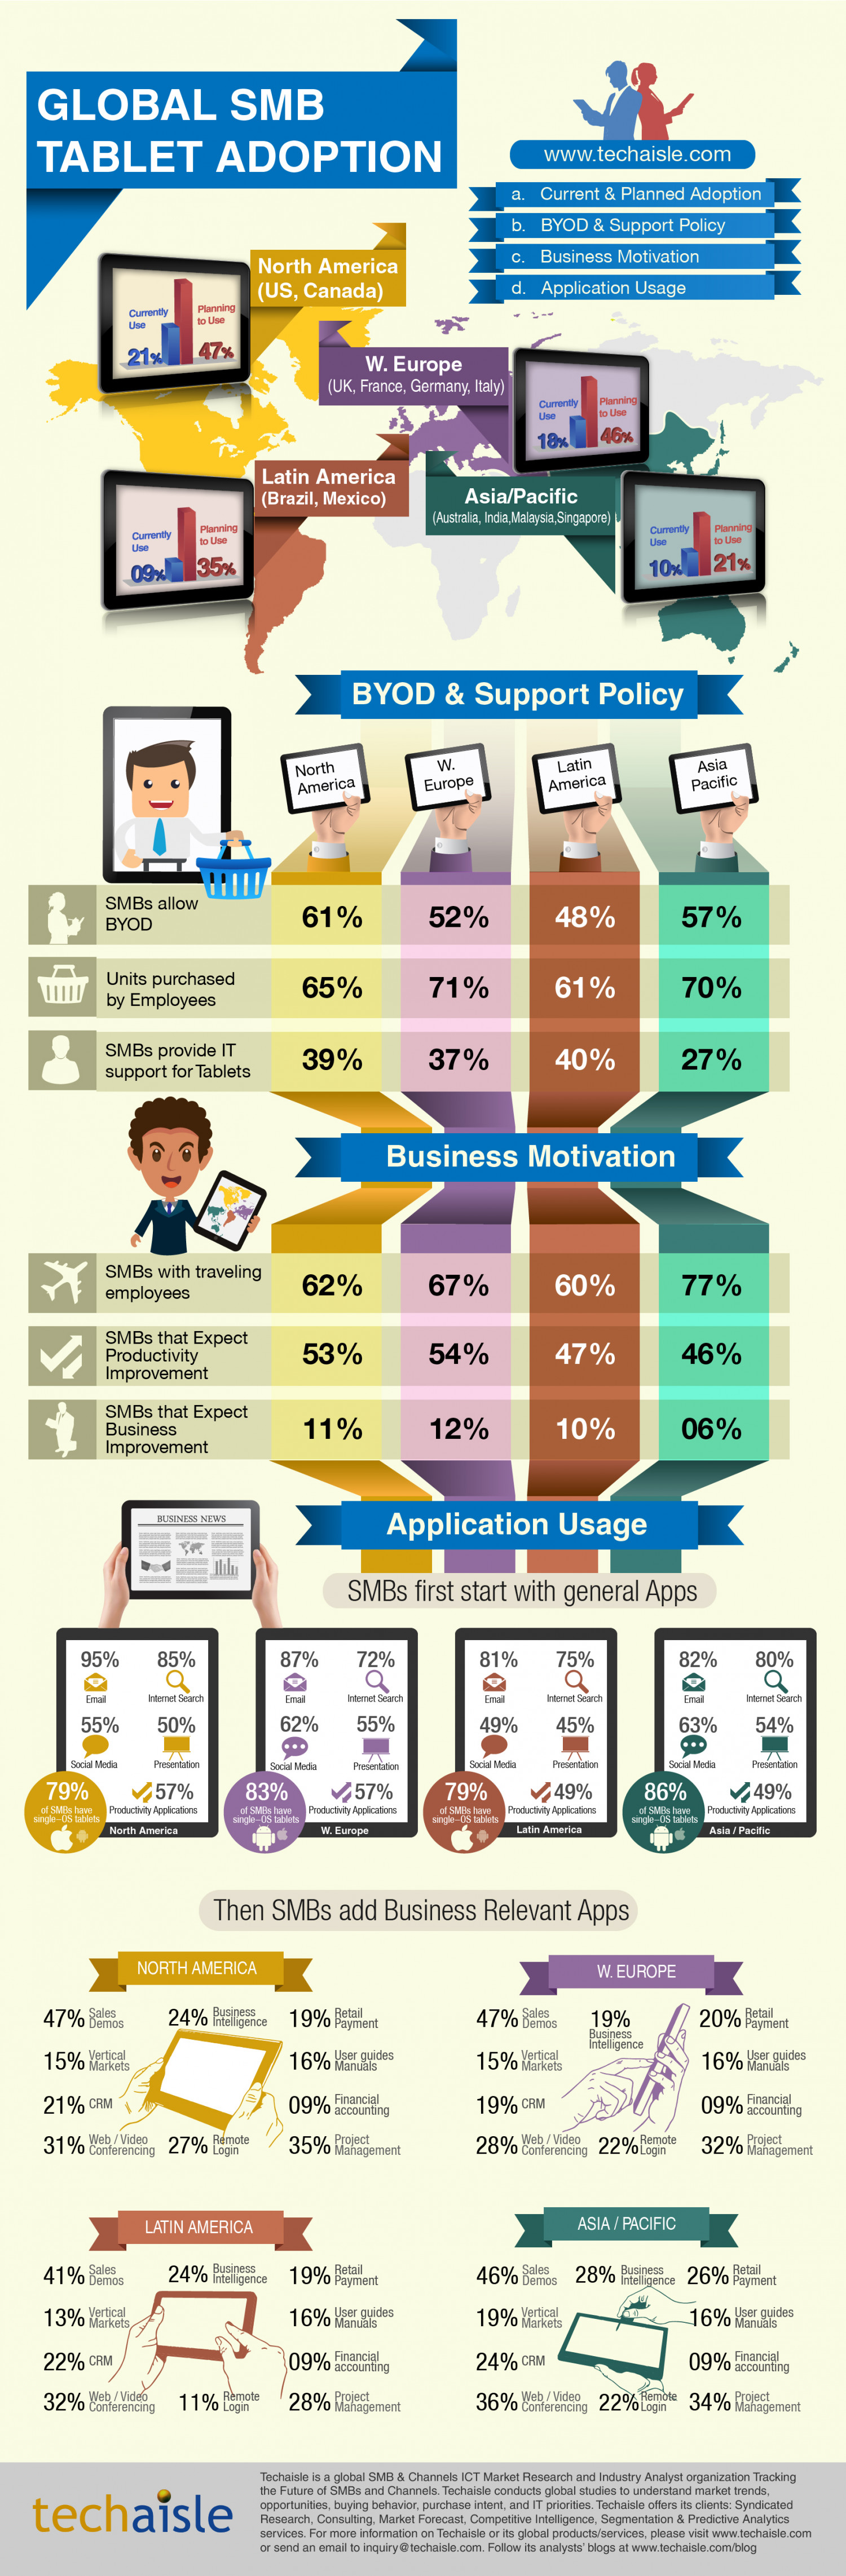 Global SMB Tablet Adoption. Infographic